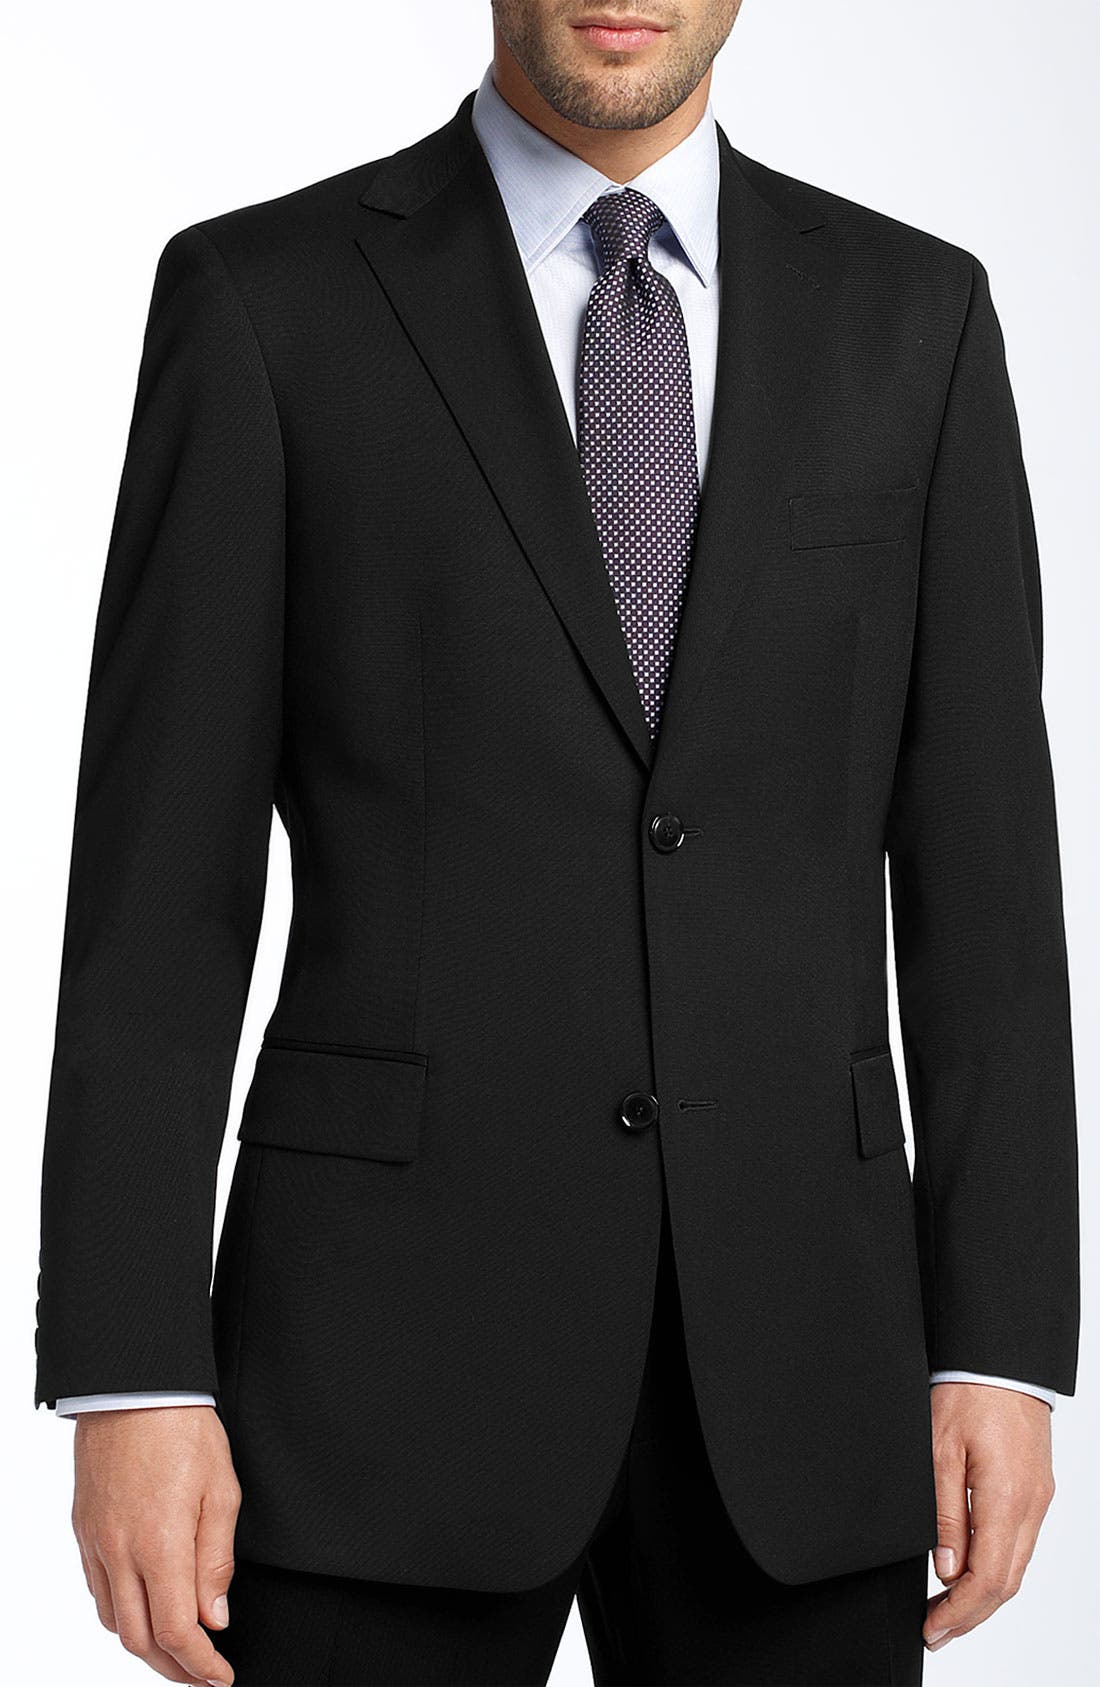 Alternate Image 1 Selected - BOSS HUGO BOSS 'Pasolini' Black Virgin Wool Sportcoat